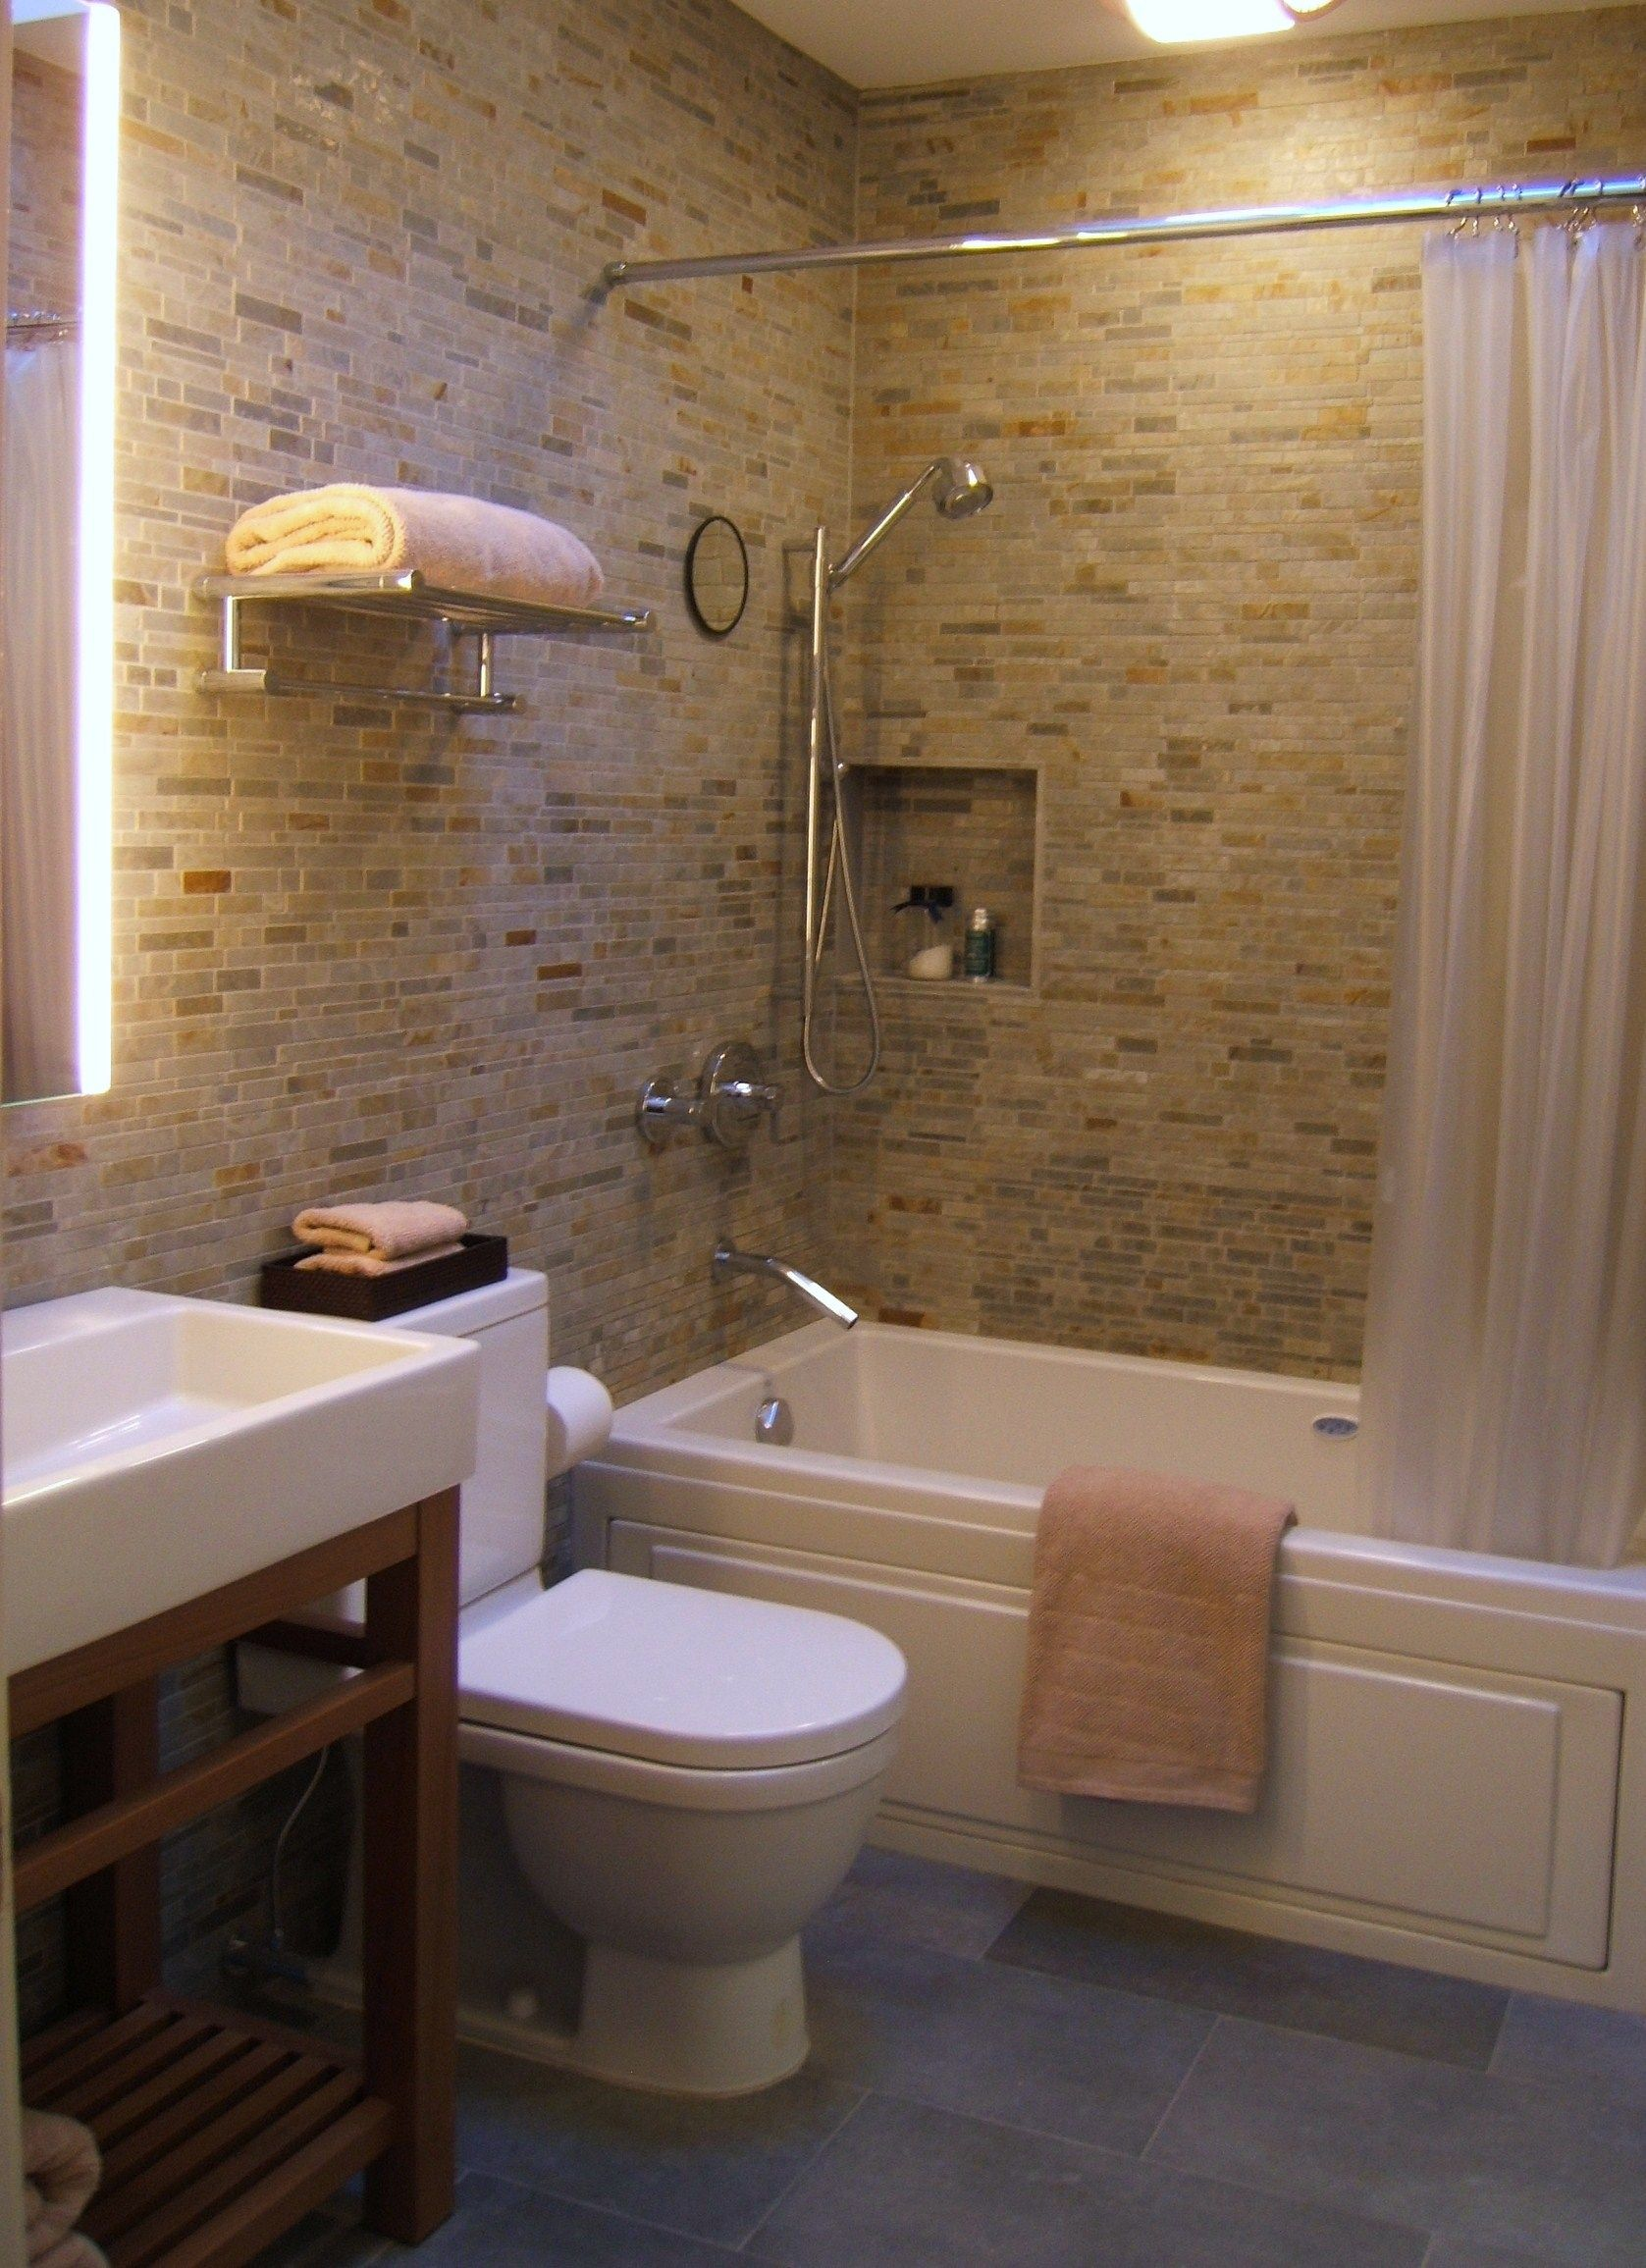 Small bathroom designs south africa small bath for Small bathroom designs with shower and tub